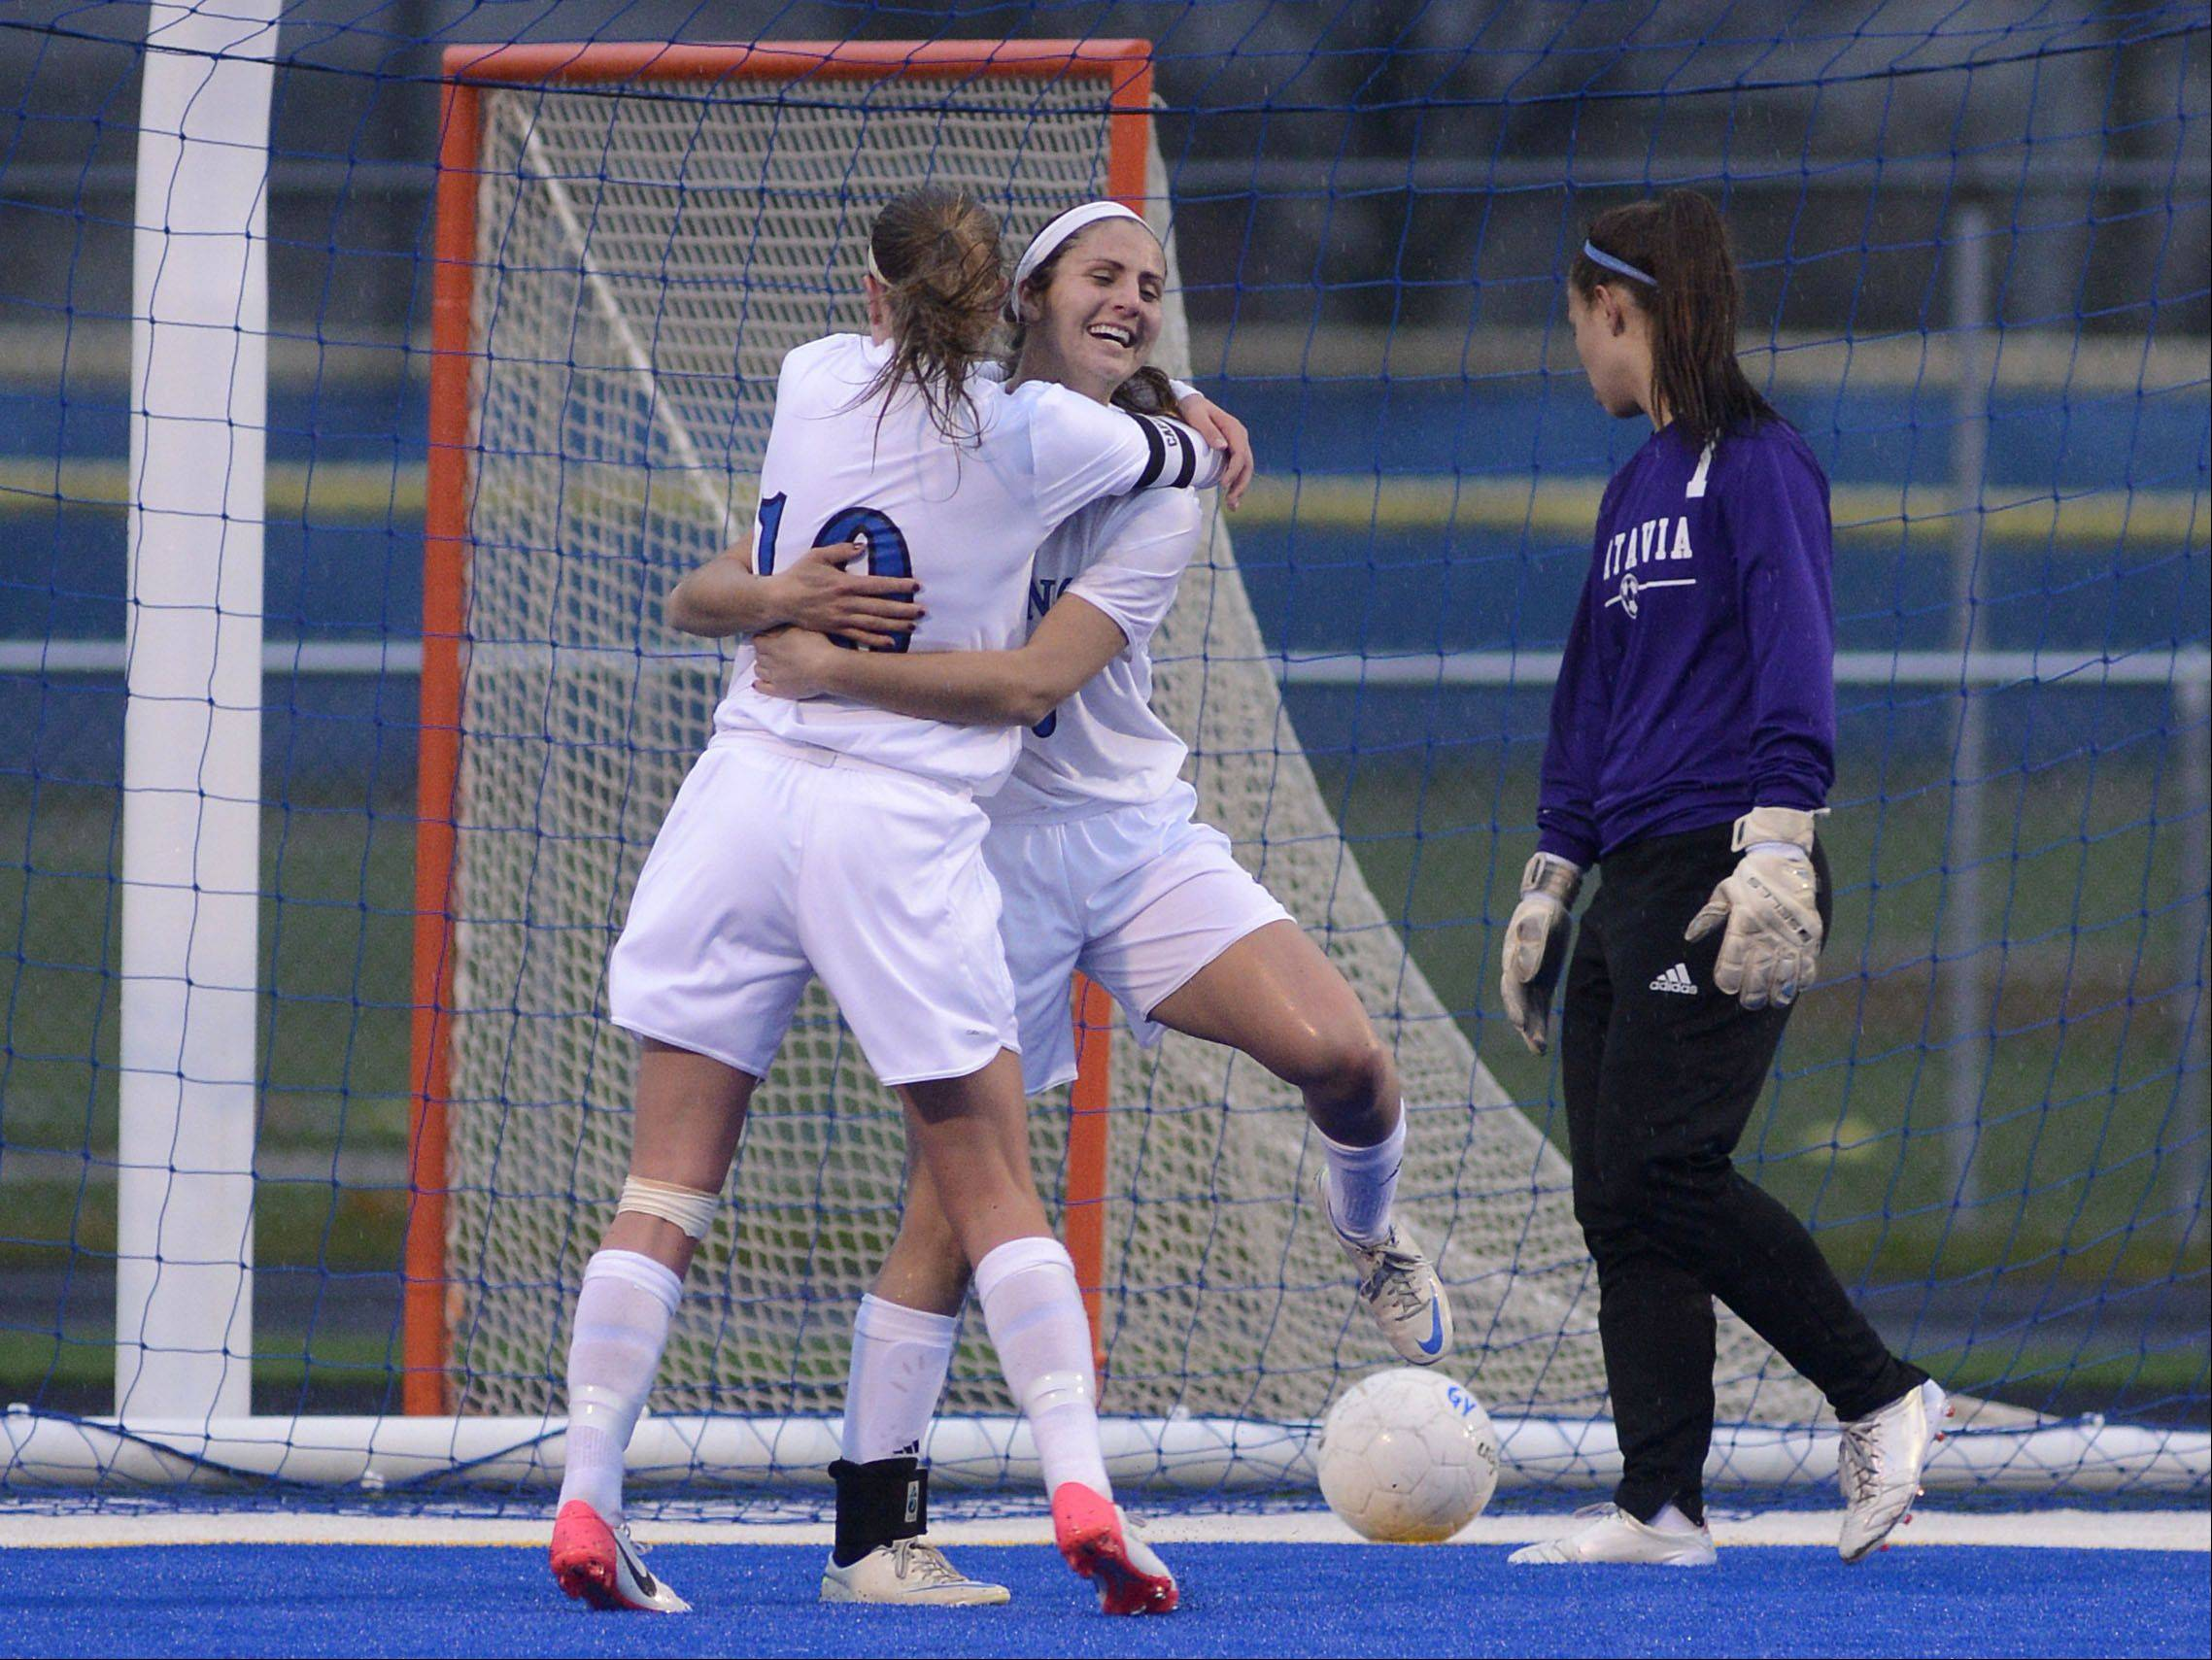 Geneva's Molly Axen, facing, celebrates her goal with teammate Amanda Lulek as Batavia goalie Nicki Seiton looks back at the missed ball in the first half on Tuesday, April 23.